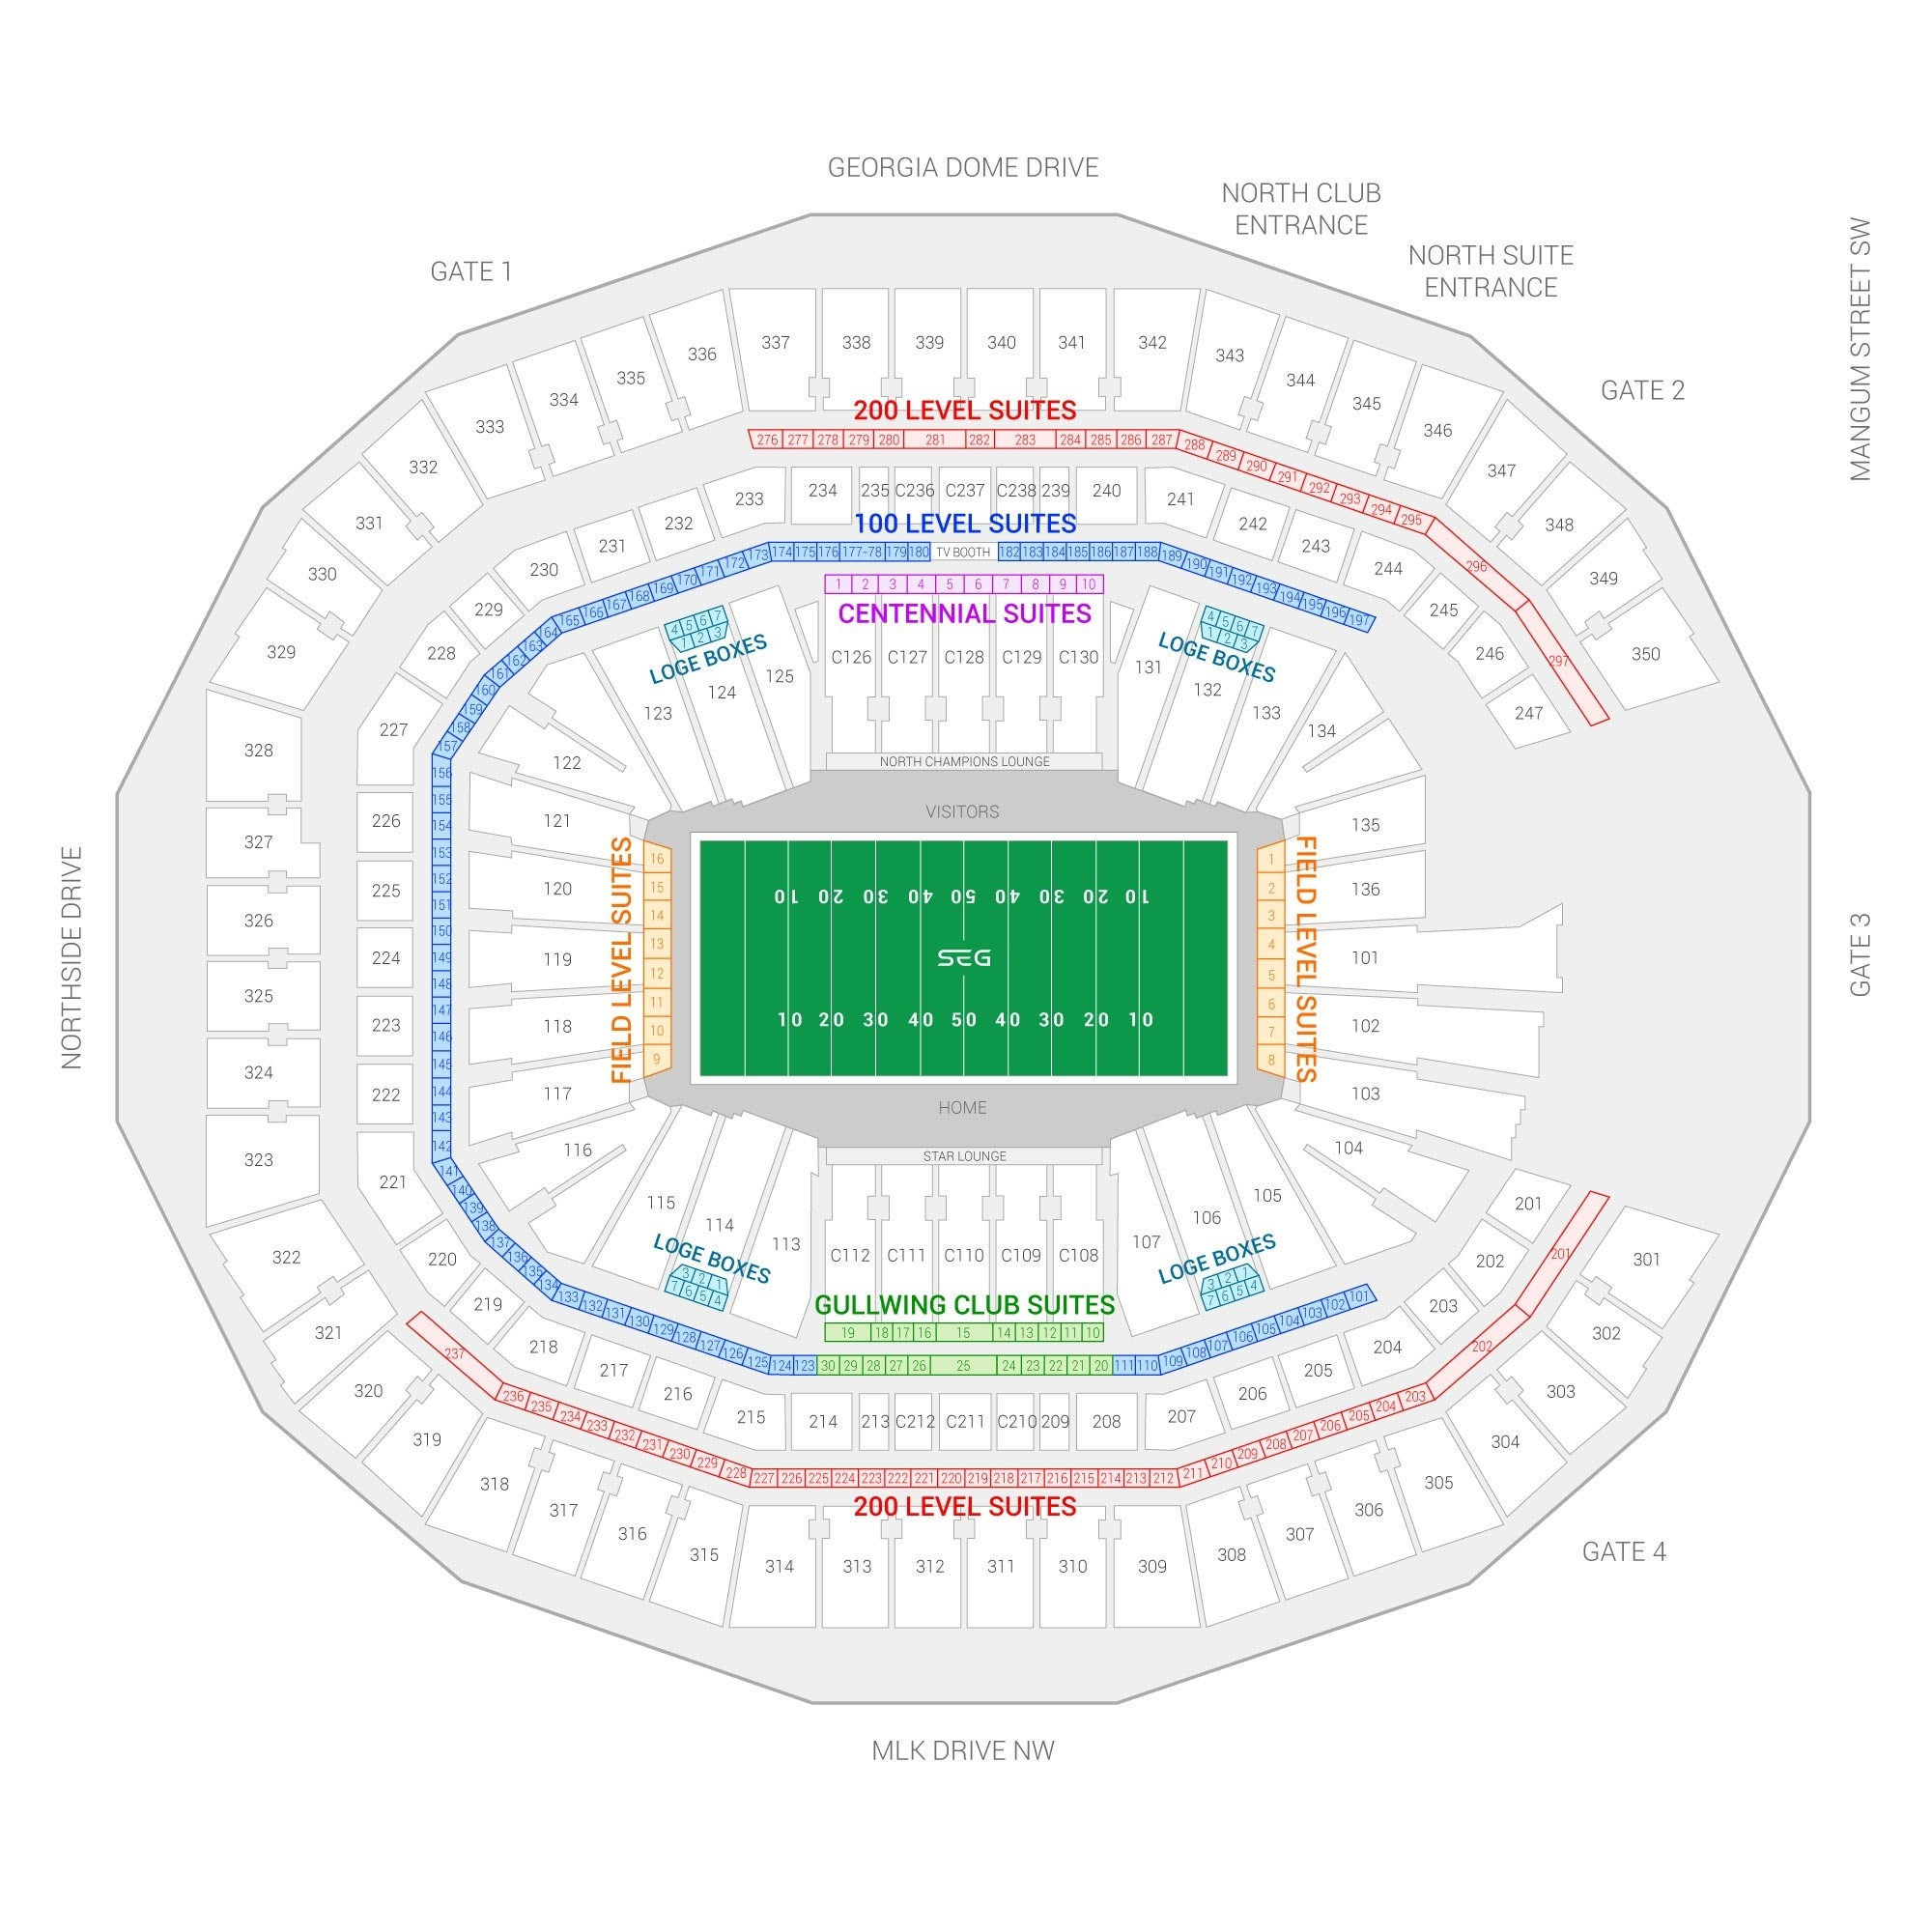 Super Bowl Liii Suite Rentals | Mercedes-Benz Stadium throughout Super Bowl 2019 Stadium Seating Chart